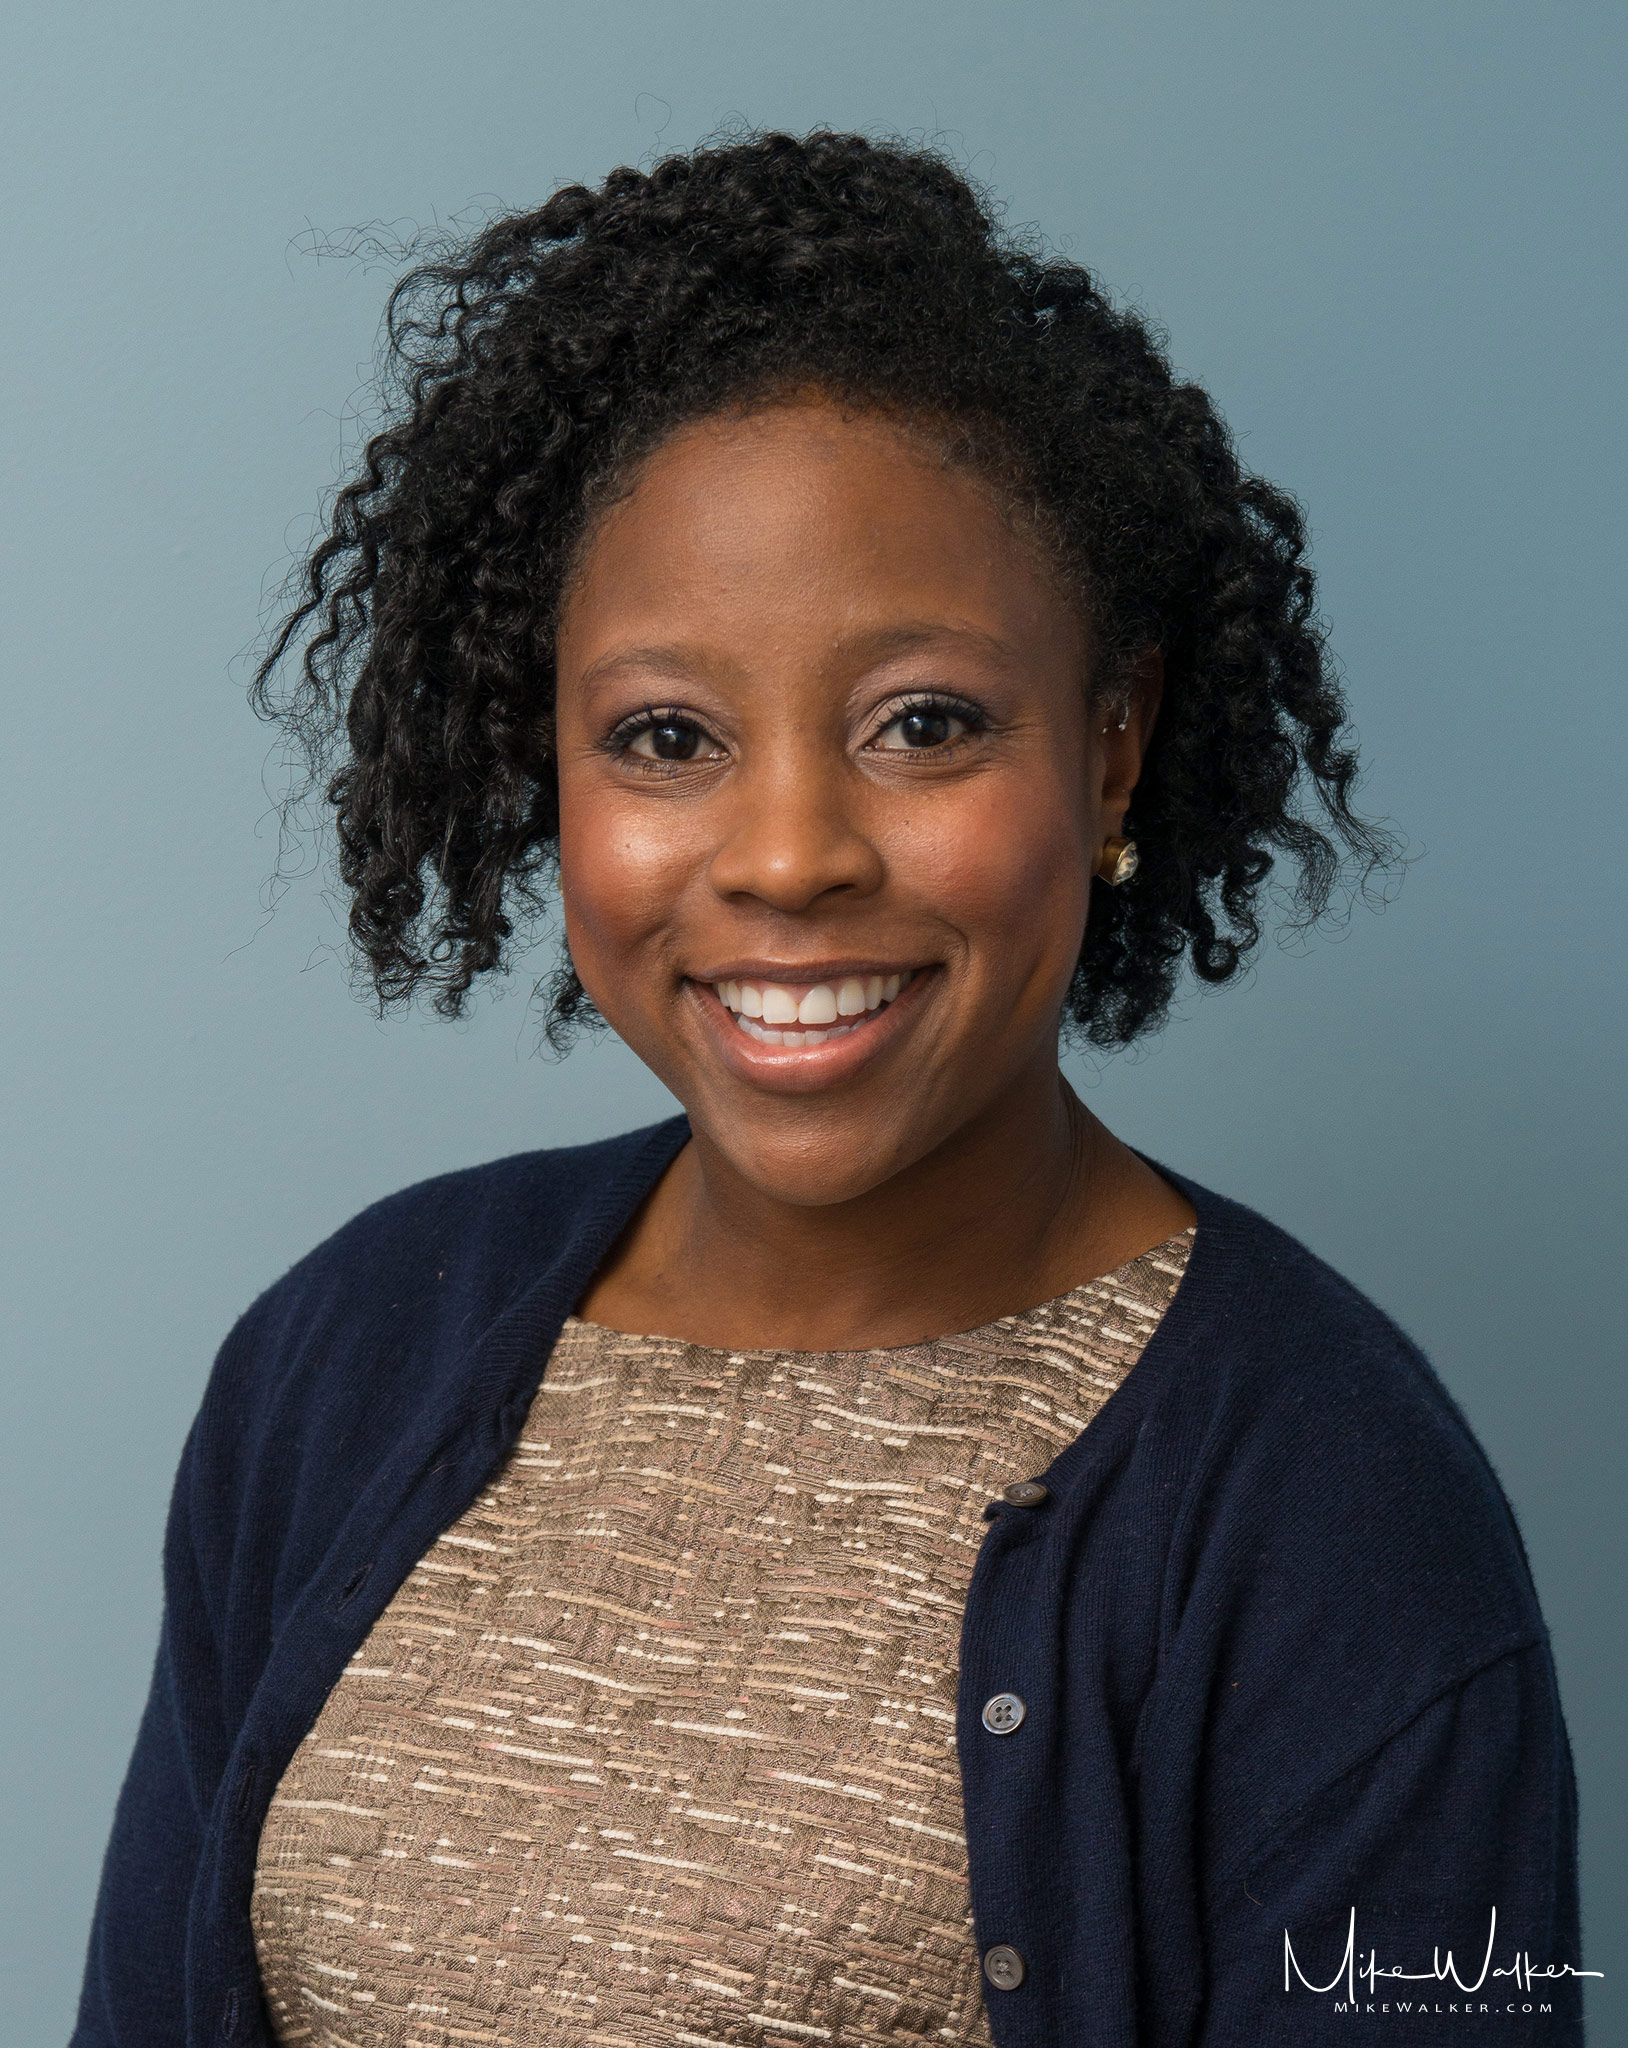 Corporate headshot for a psychology office in NJ. Photography by Mike Walker.